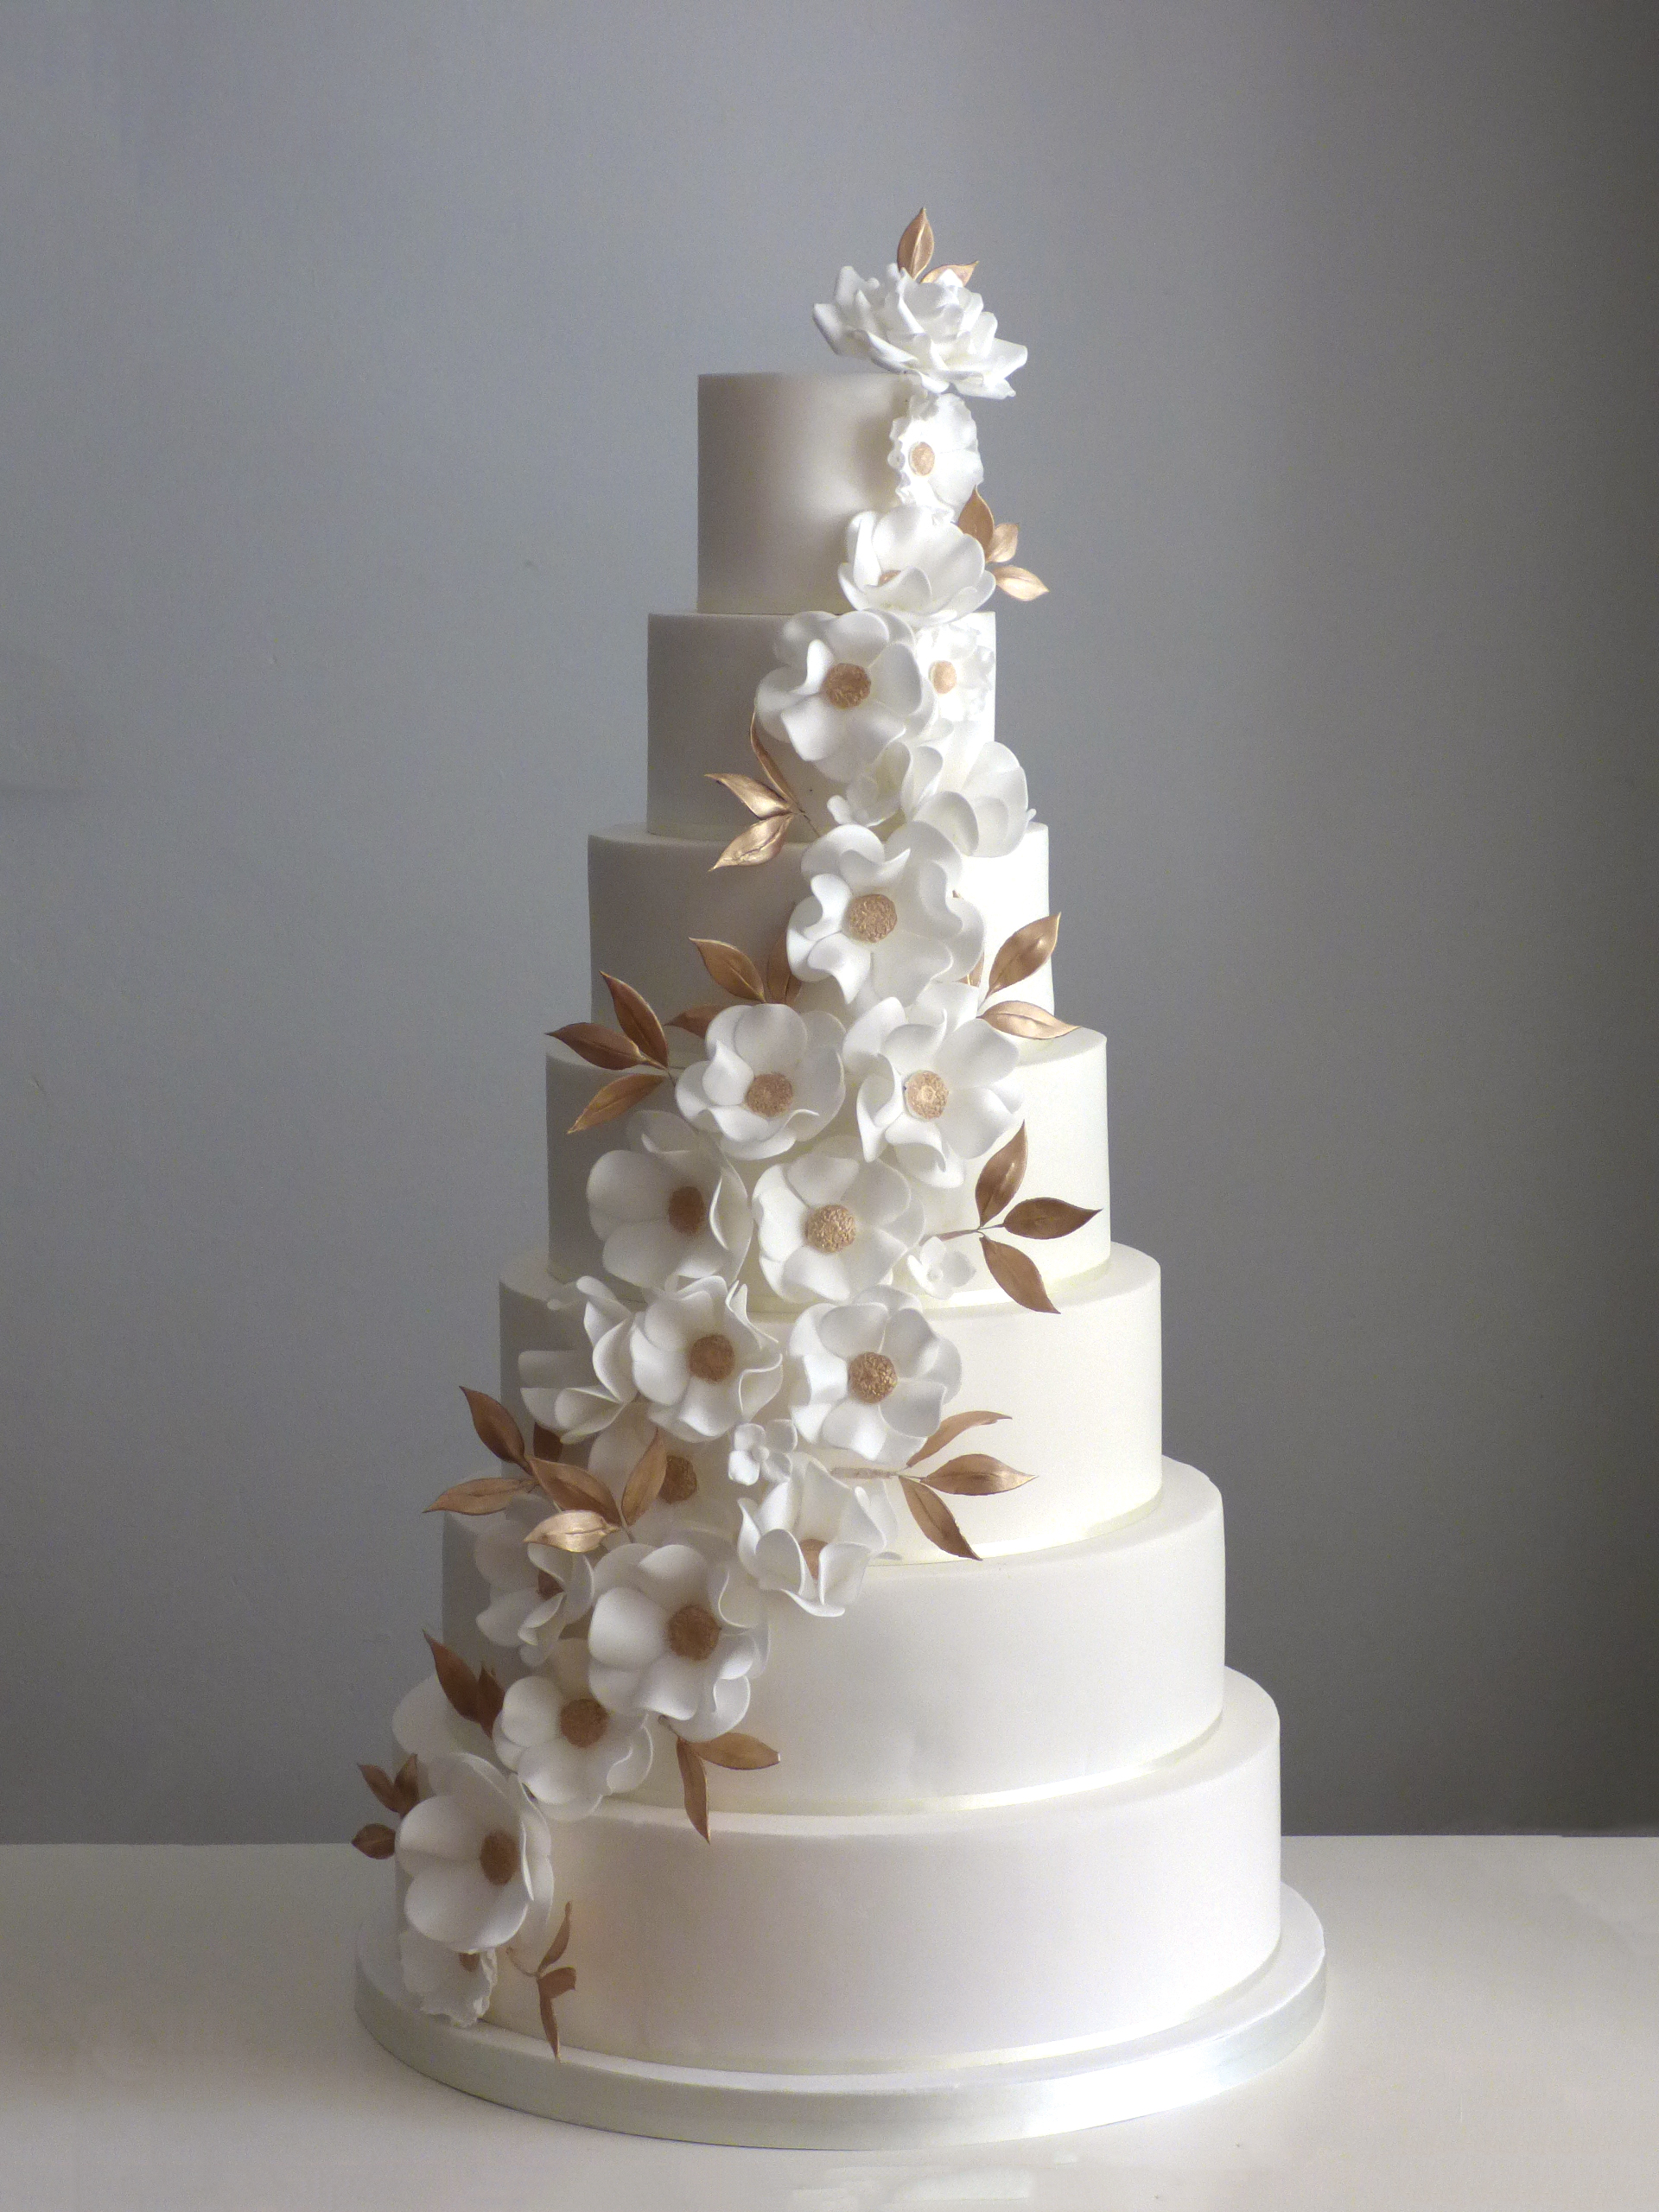 Cake with flowers and foliage - works for anything from an enchanted woodland theme to a traditional elegant wedding.